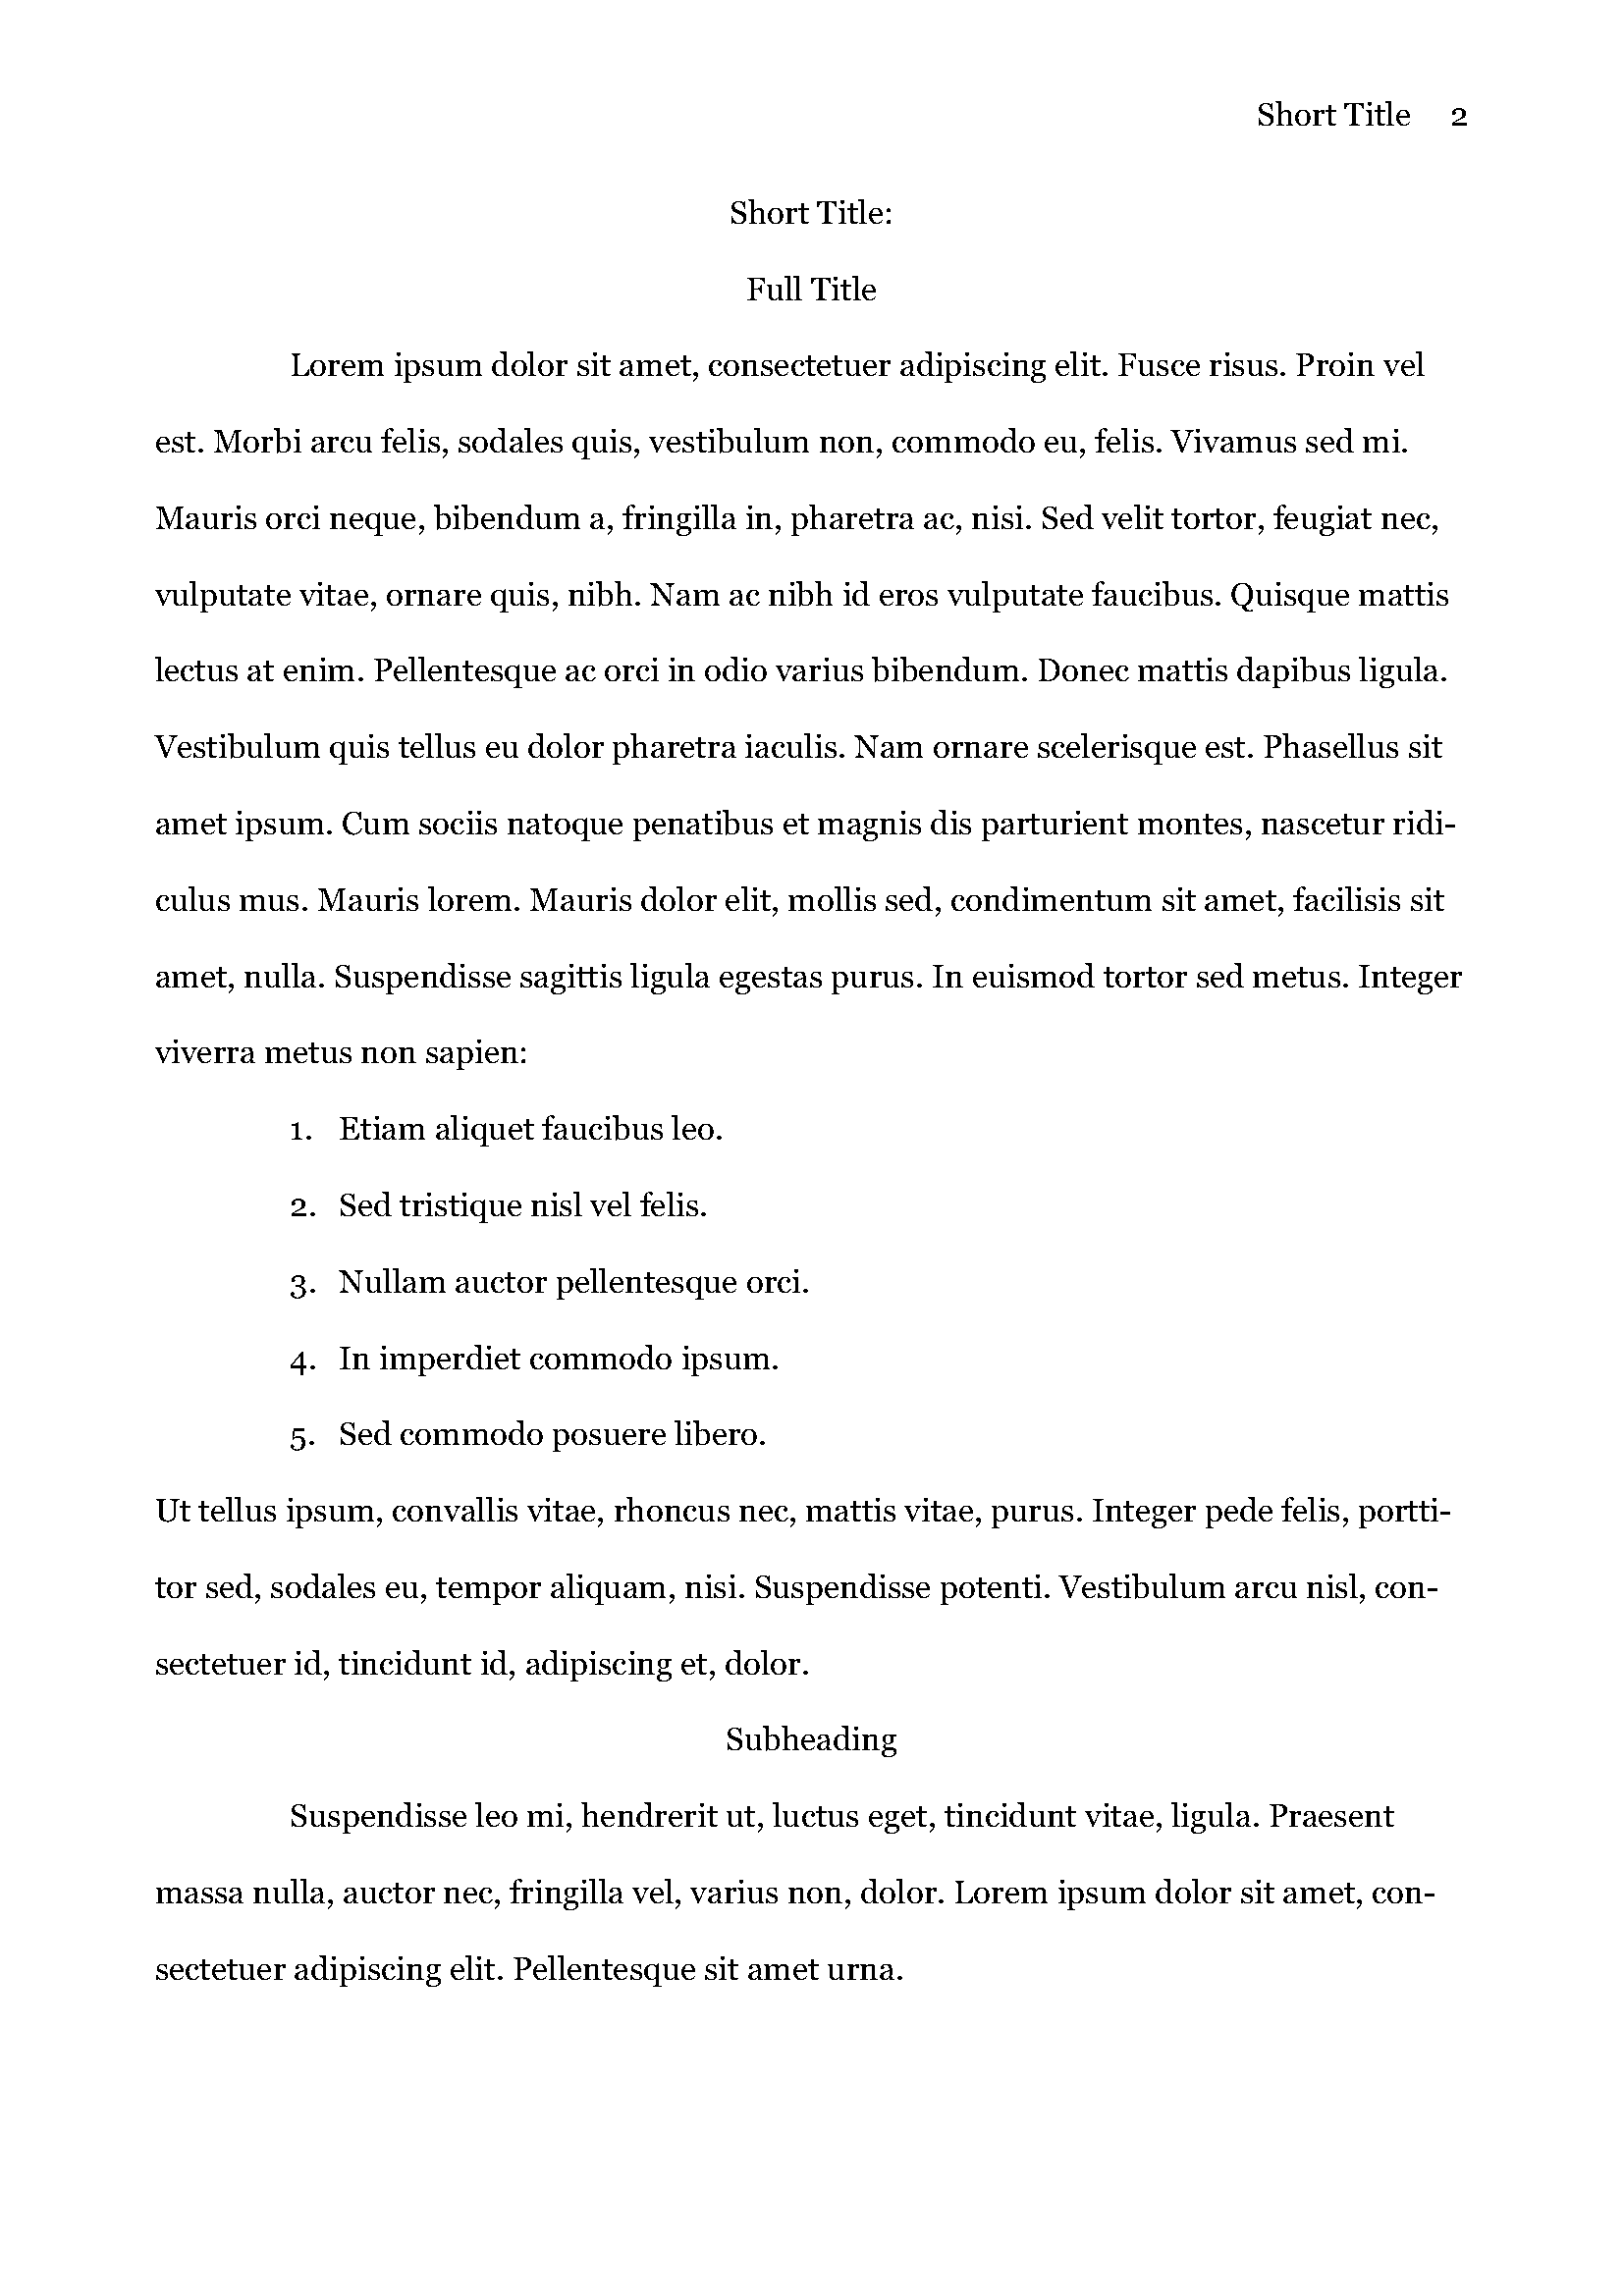 023 Citing Research Paper In Apa Format Sample Page 2 Fantastic A Full